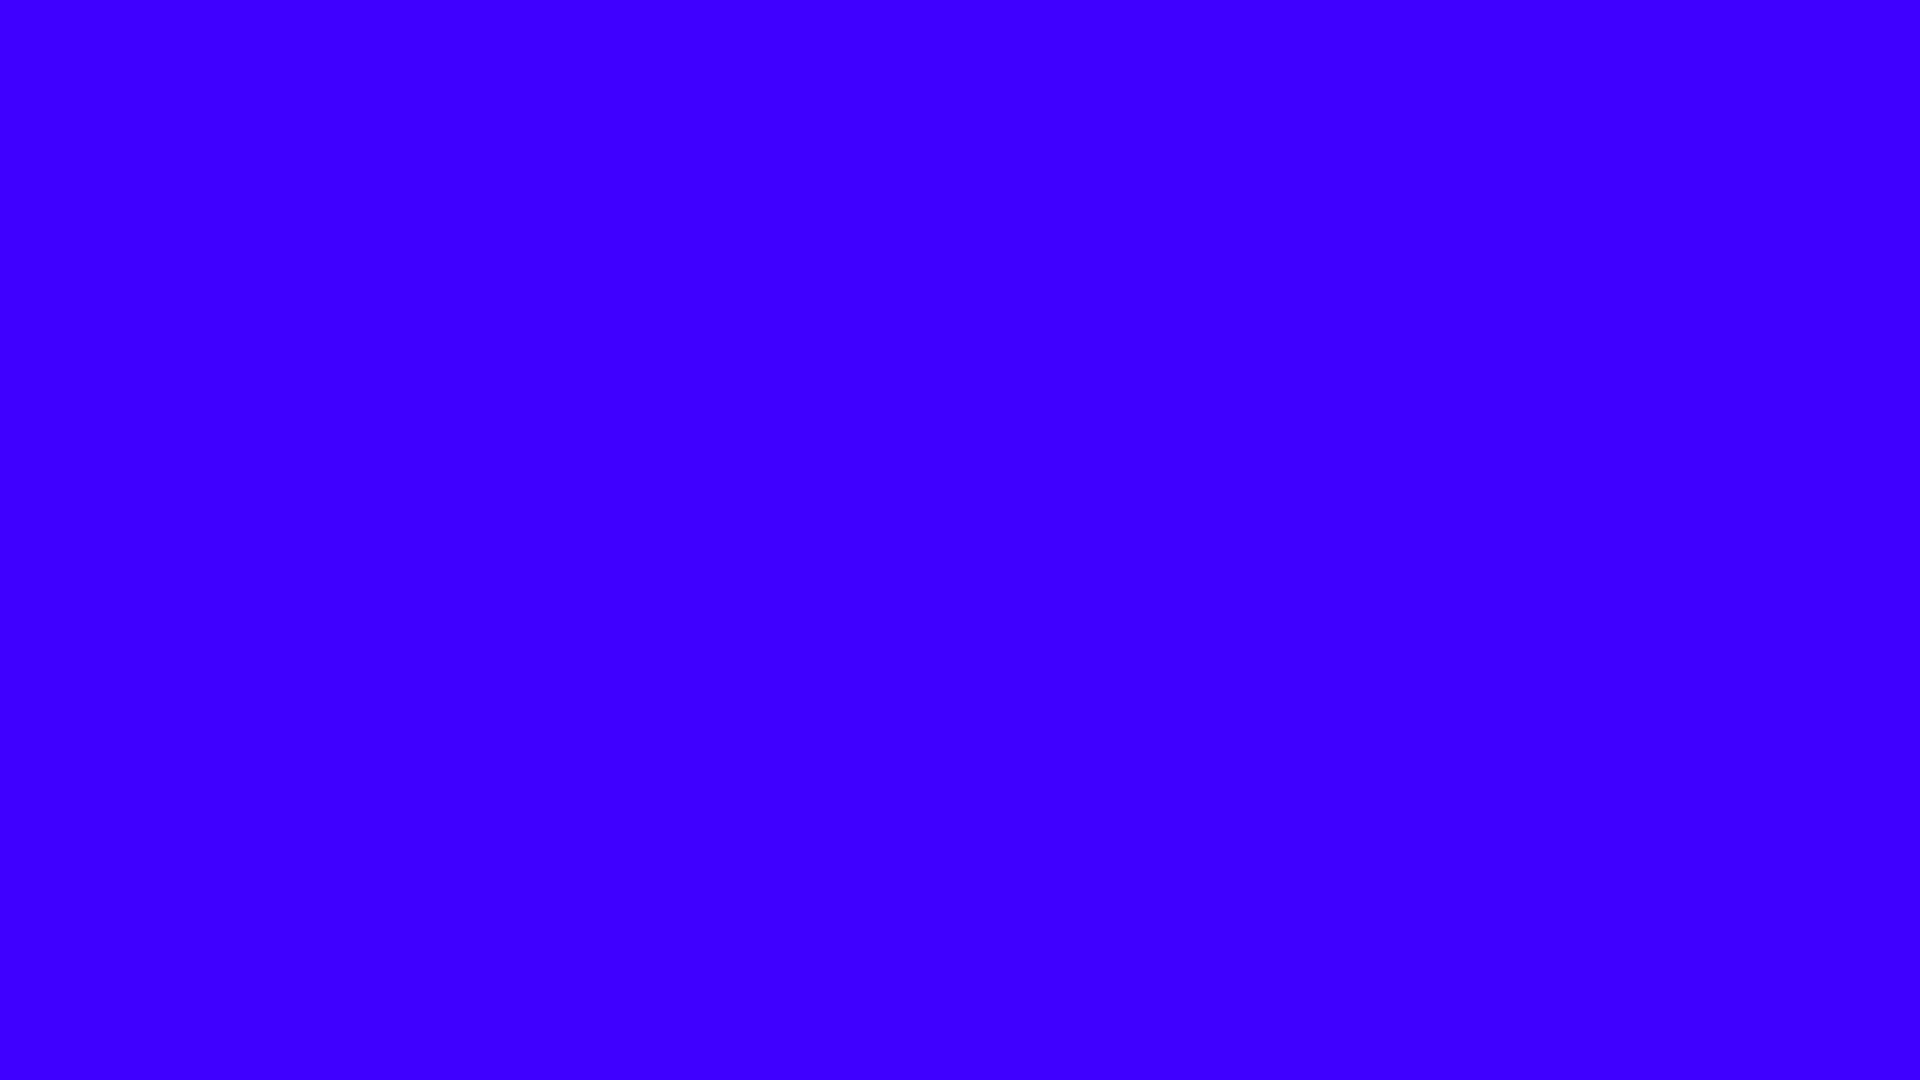 1920x1080 Electric Ultramarine Solid Color Background